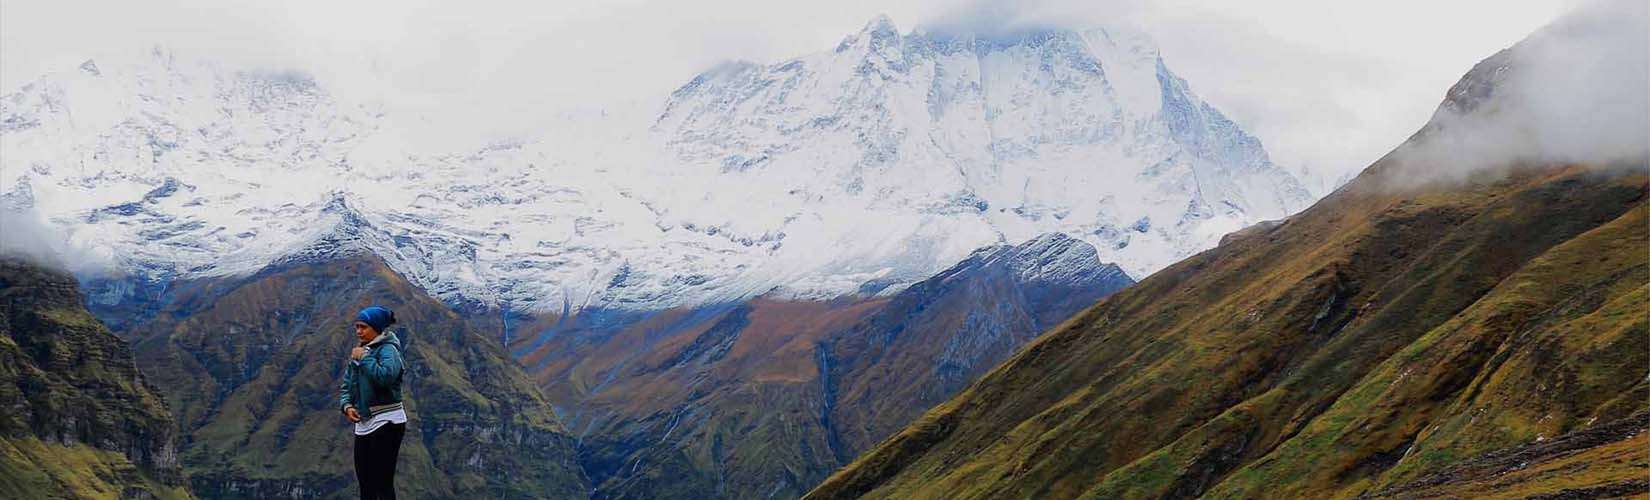 Annapurna Region Weather